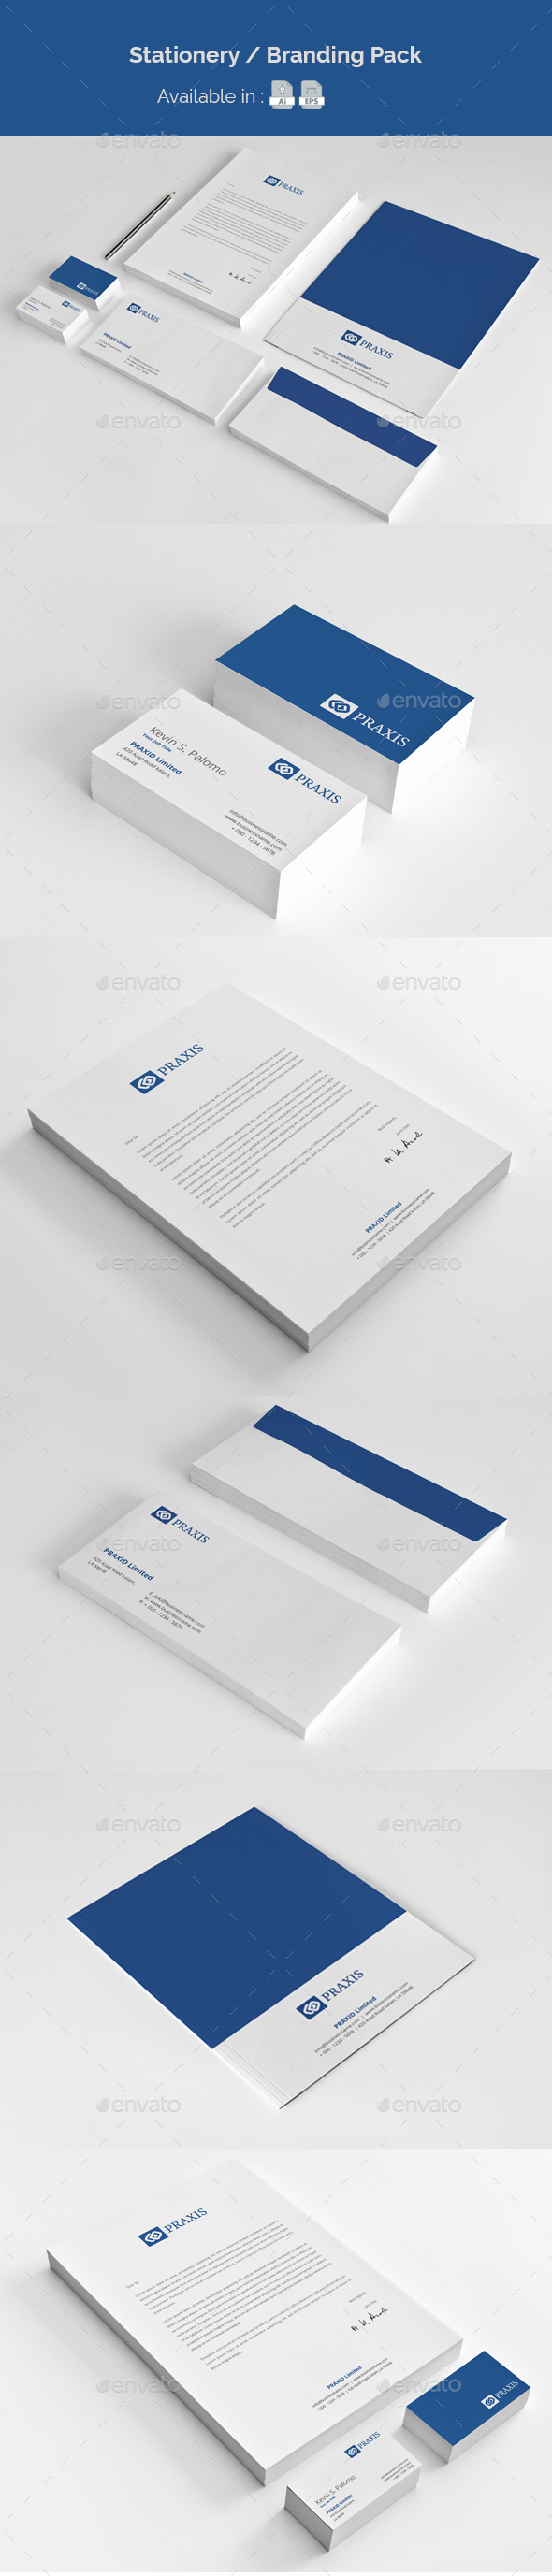 Stationery Branding Pack - Stationery Print Templates